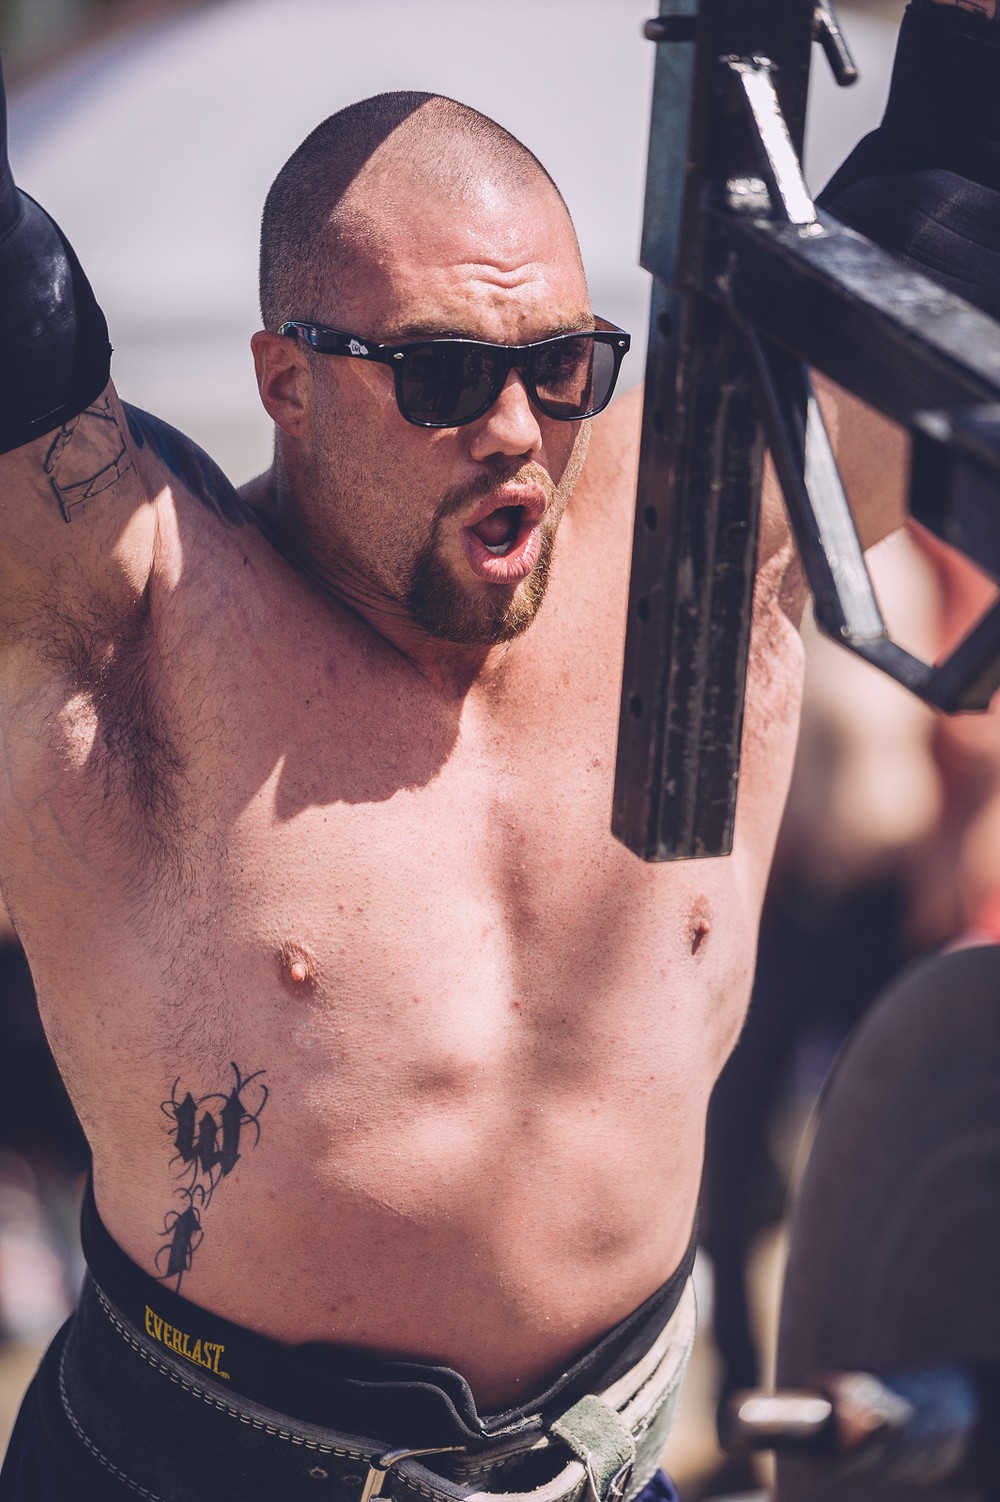 strongman_2015_blog66.jpg